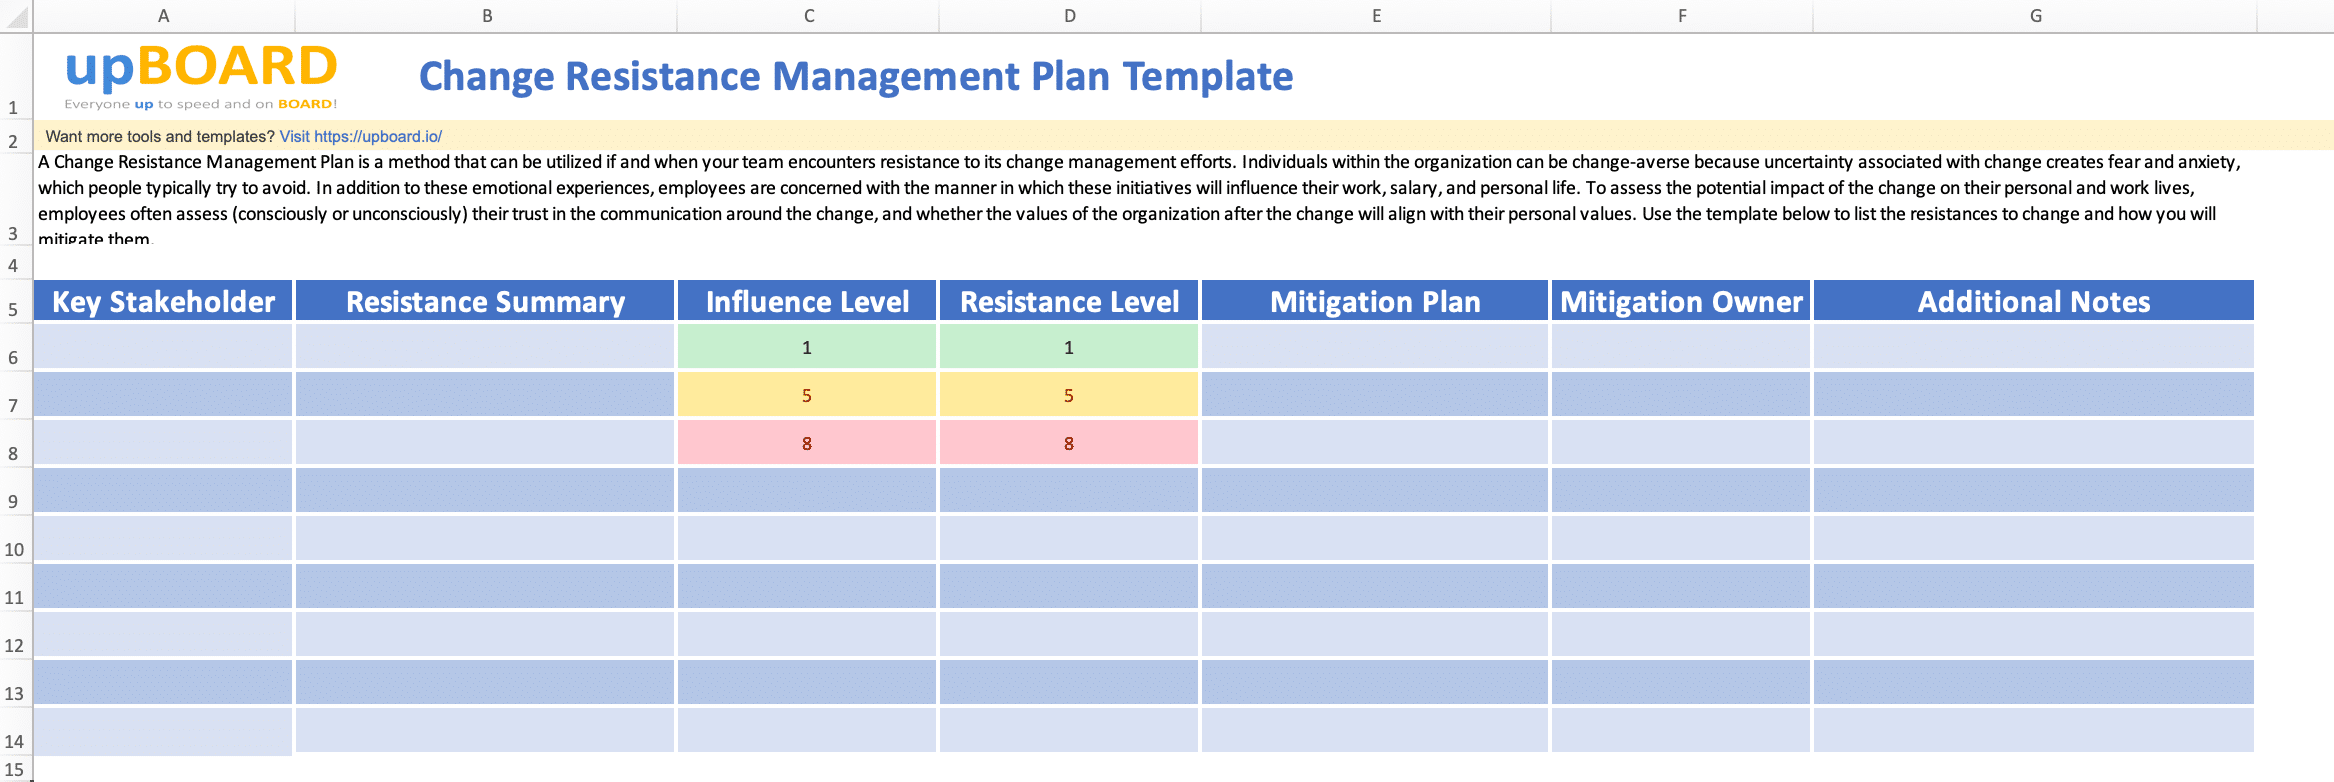 Change Resistance Management Plan Template - Free Excel Tool